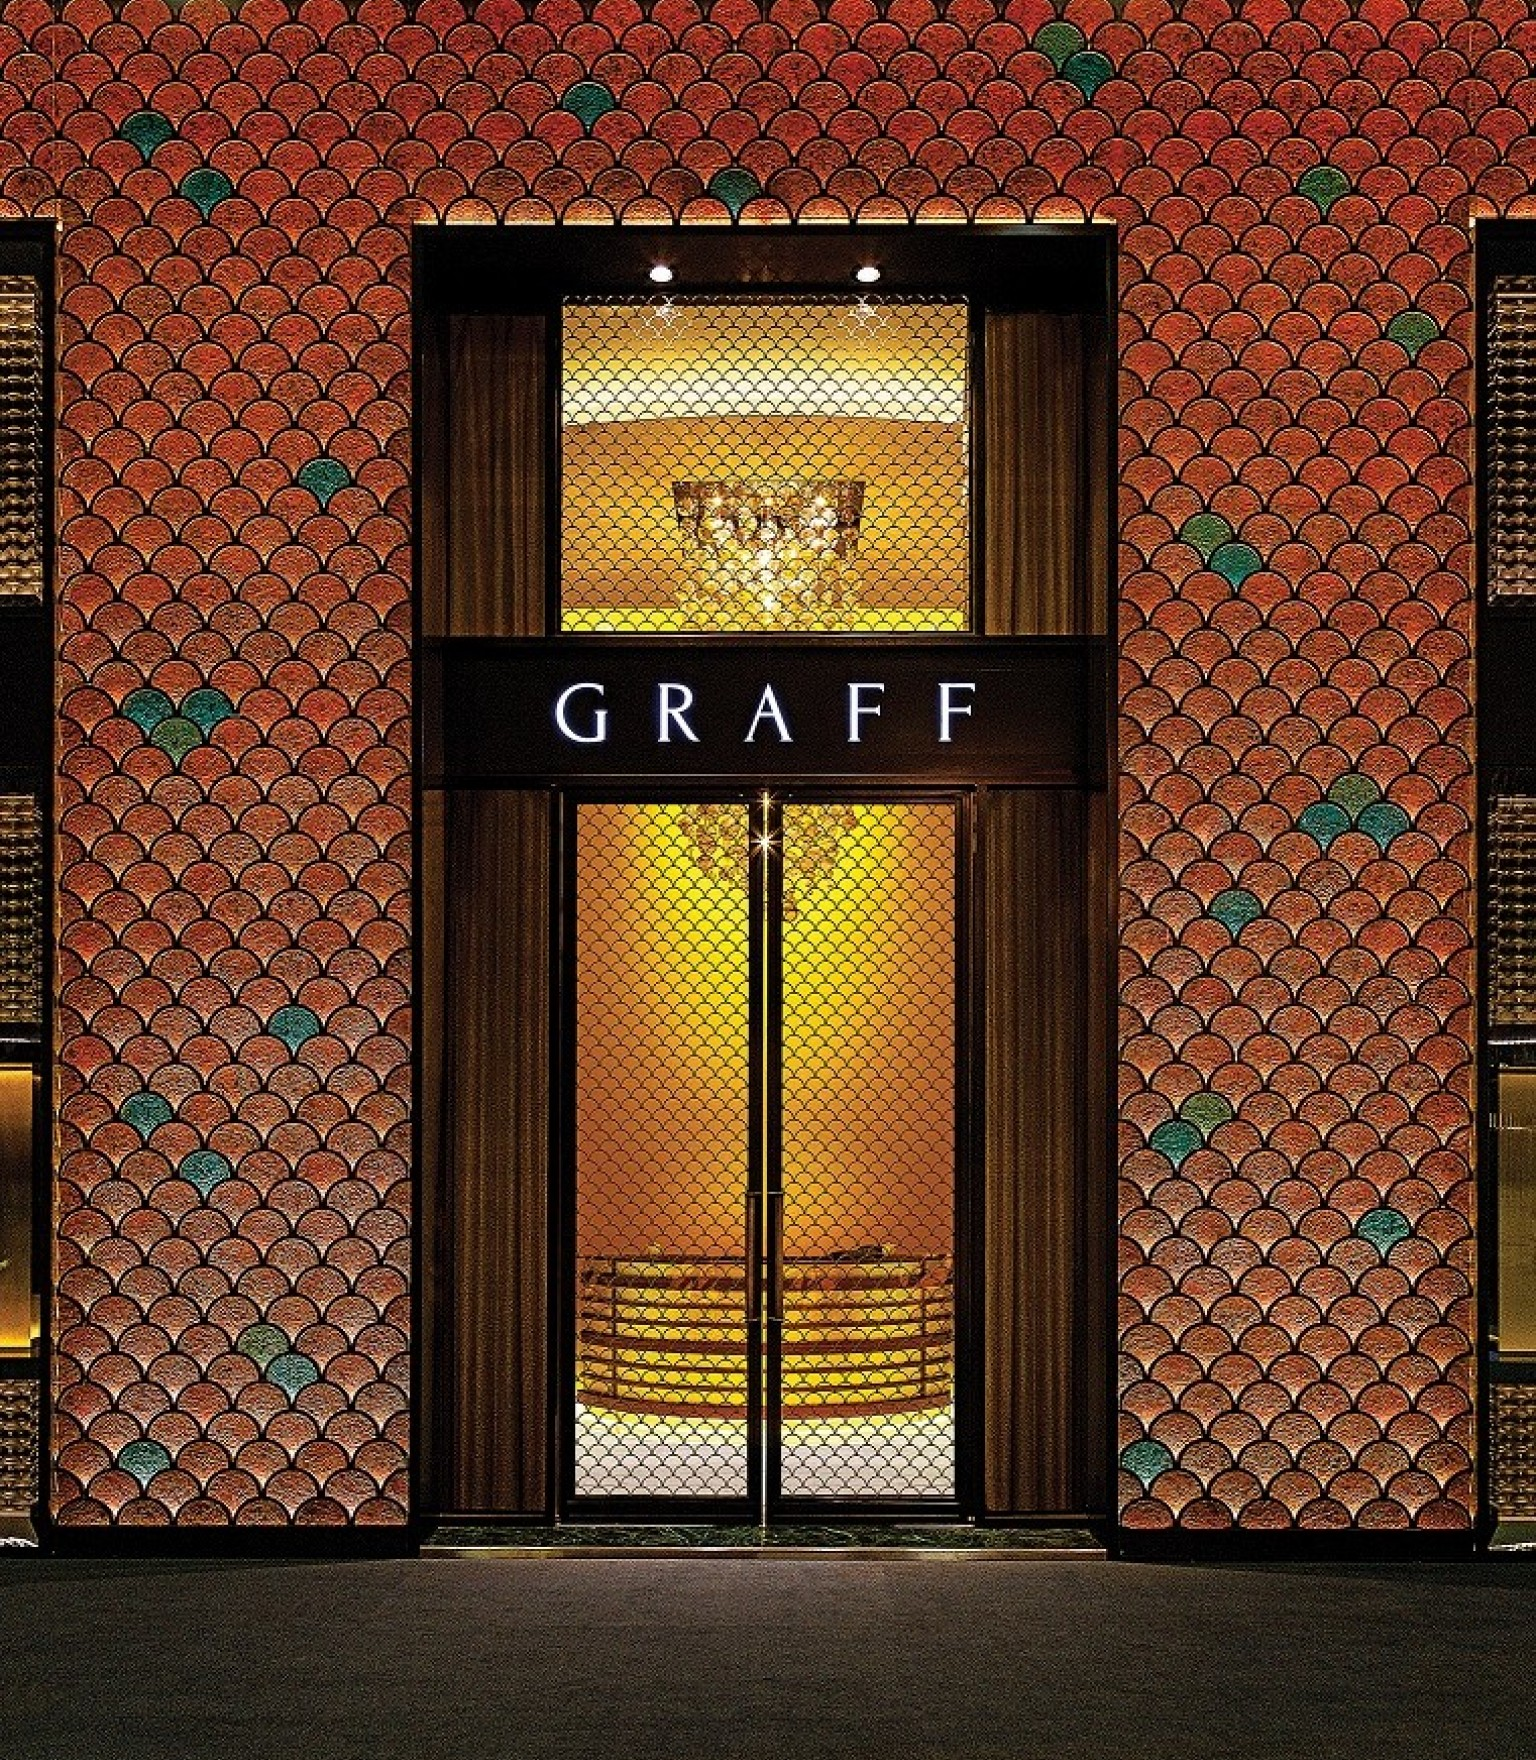 Graff booth at Baselworld, Basel, Switzerland.